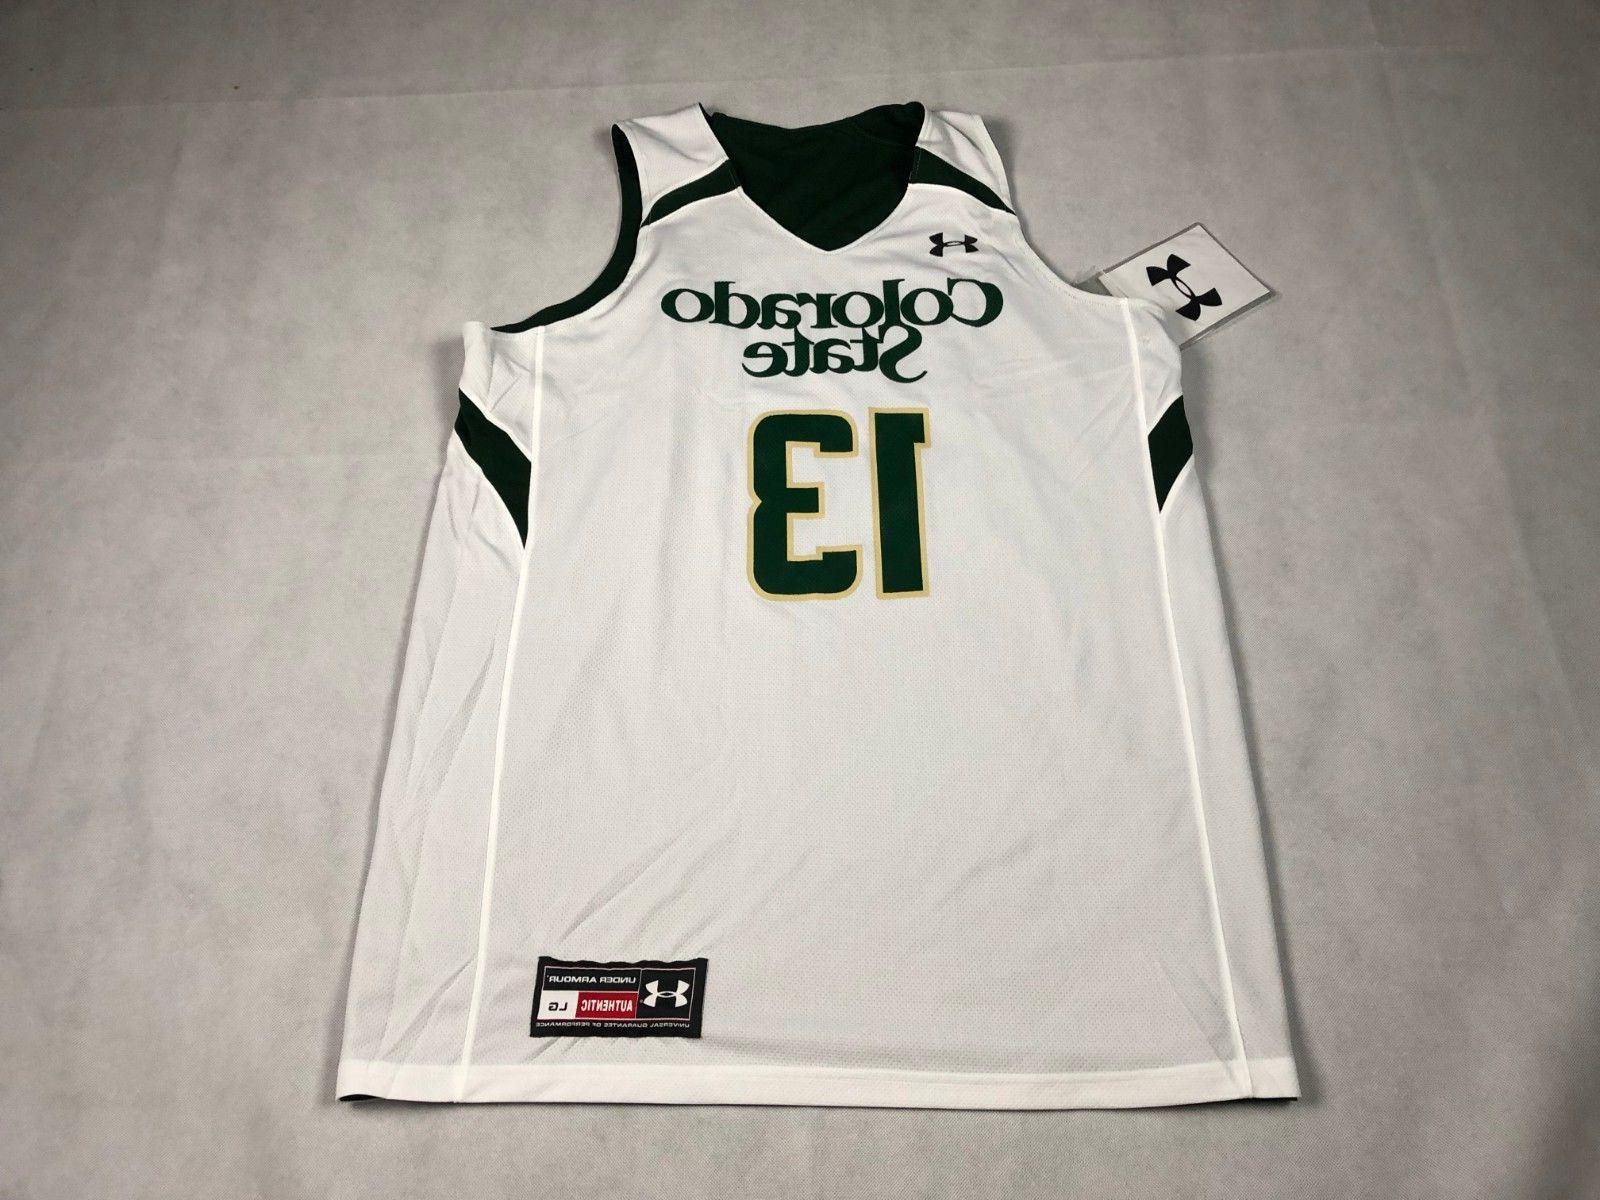 UNDER L BASKETBALL REVERSIBLE JERSEY COLORADO STATE